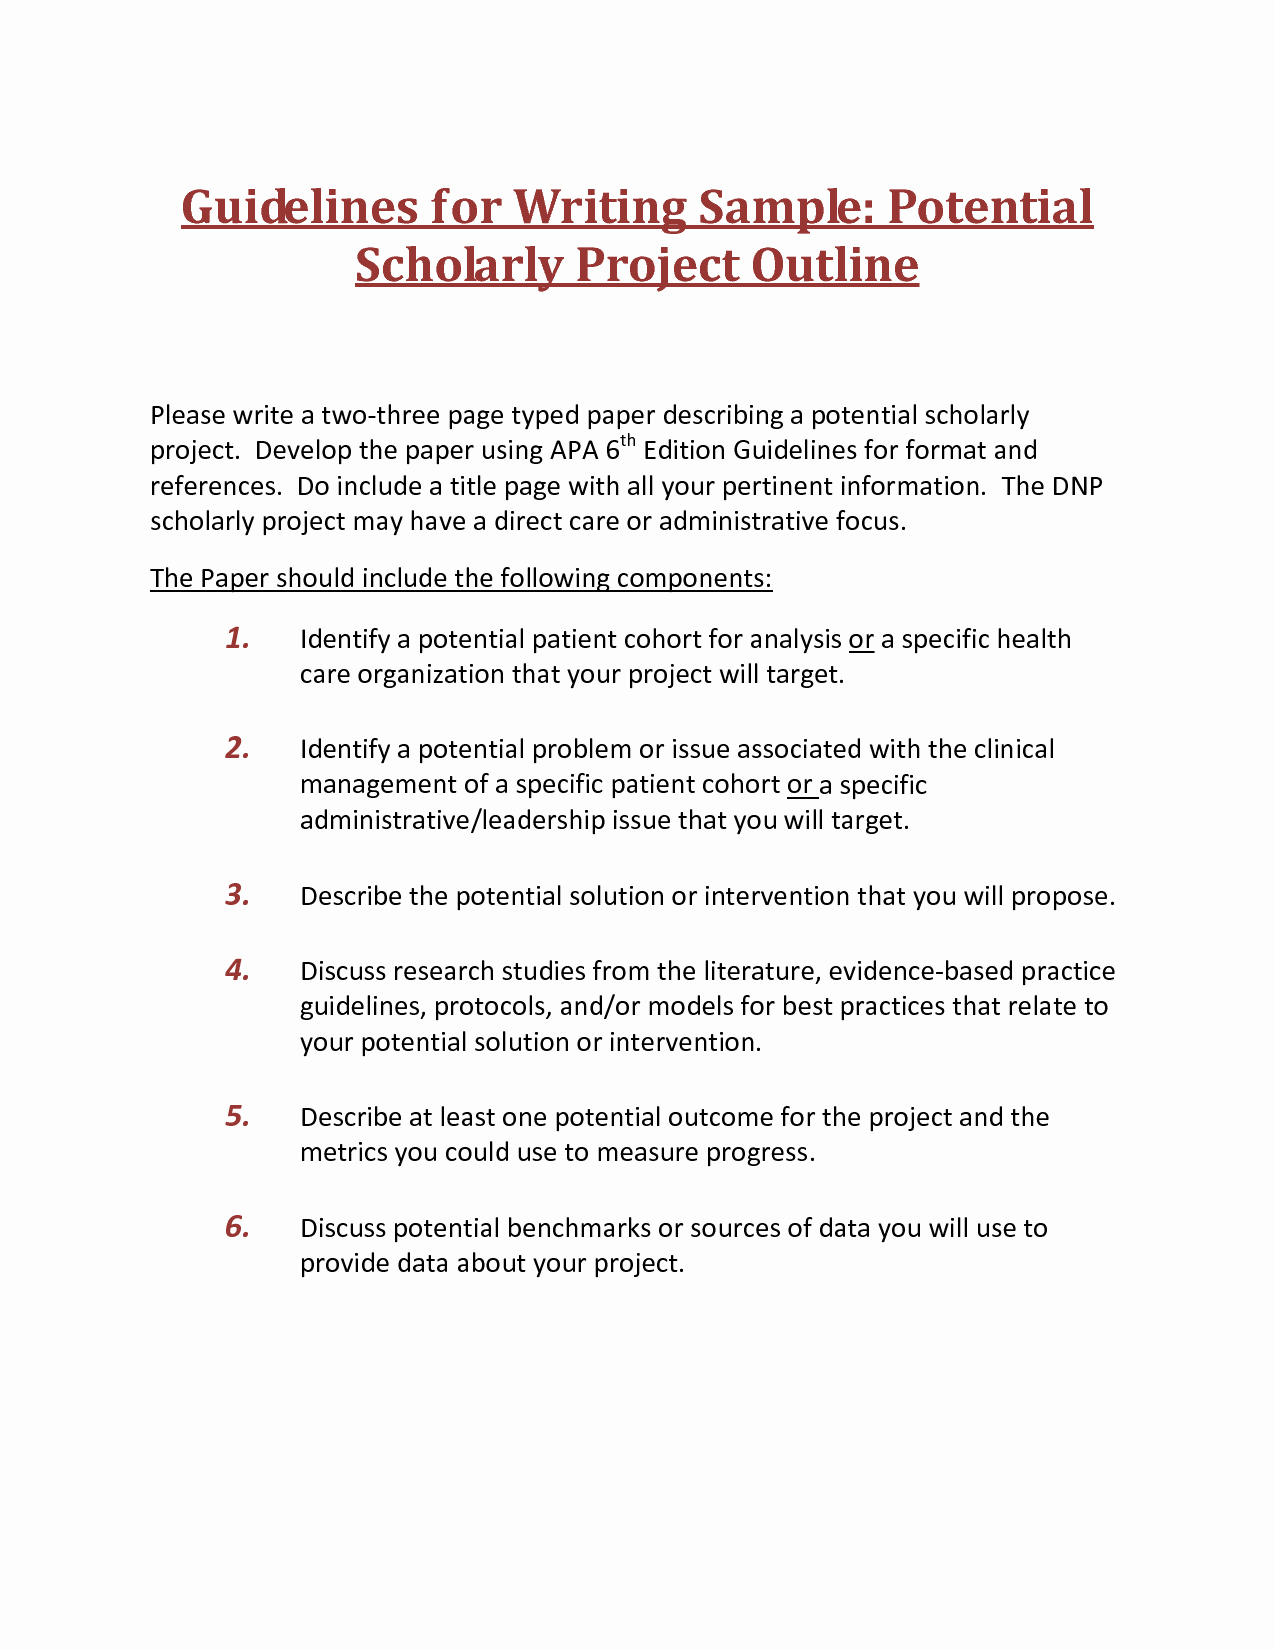 Apa Outline Template | Apa Style Paper 6th Edition Fresh Best S Of Outline Template Apa 6th